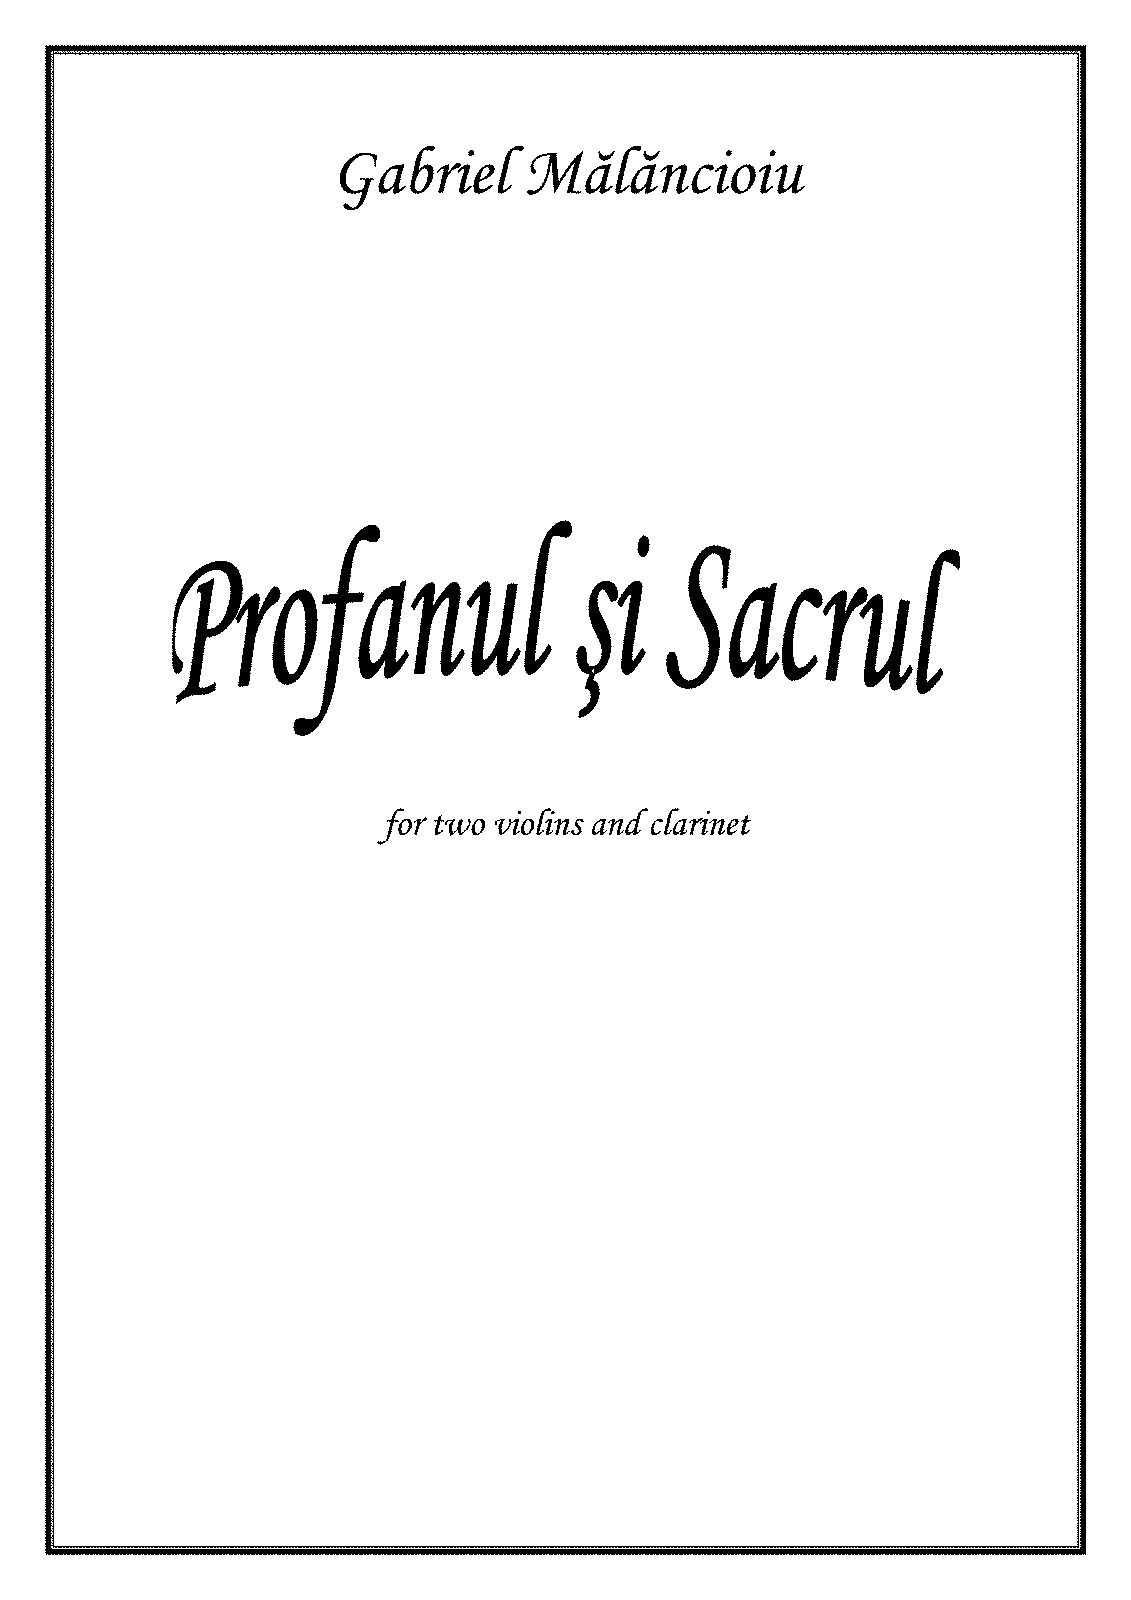 PMLP474336-Profanul si sacrul for two violins and clarinet Complete Score and parts.pdf